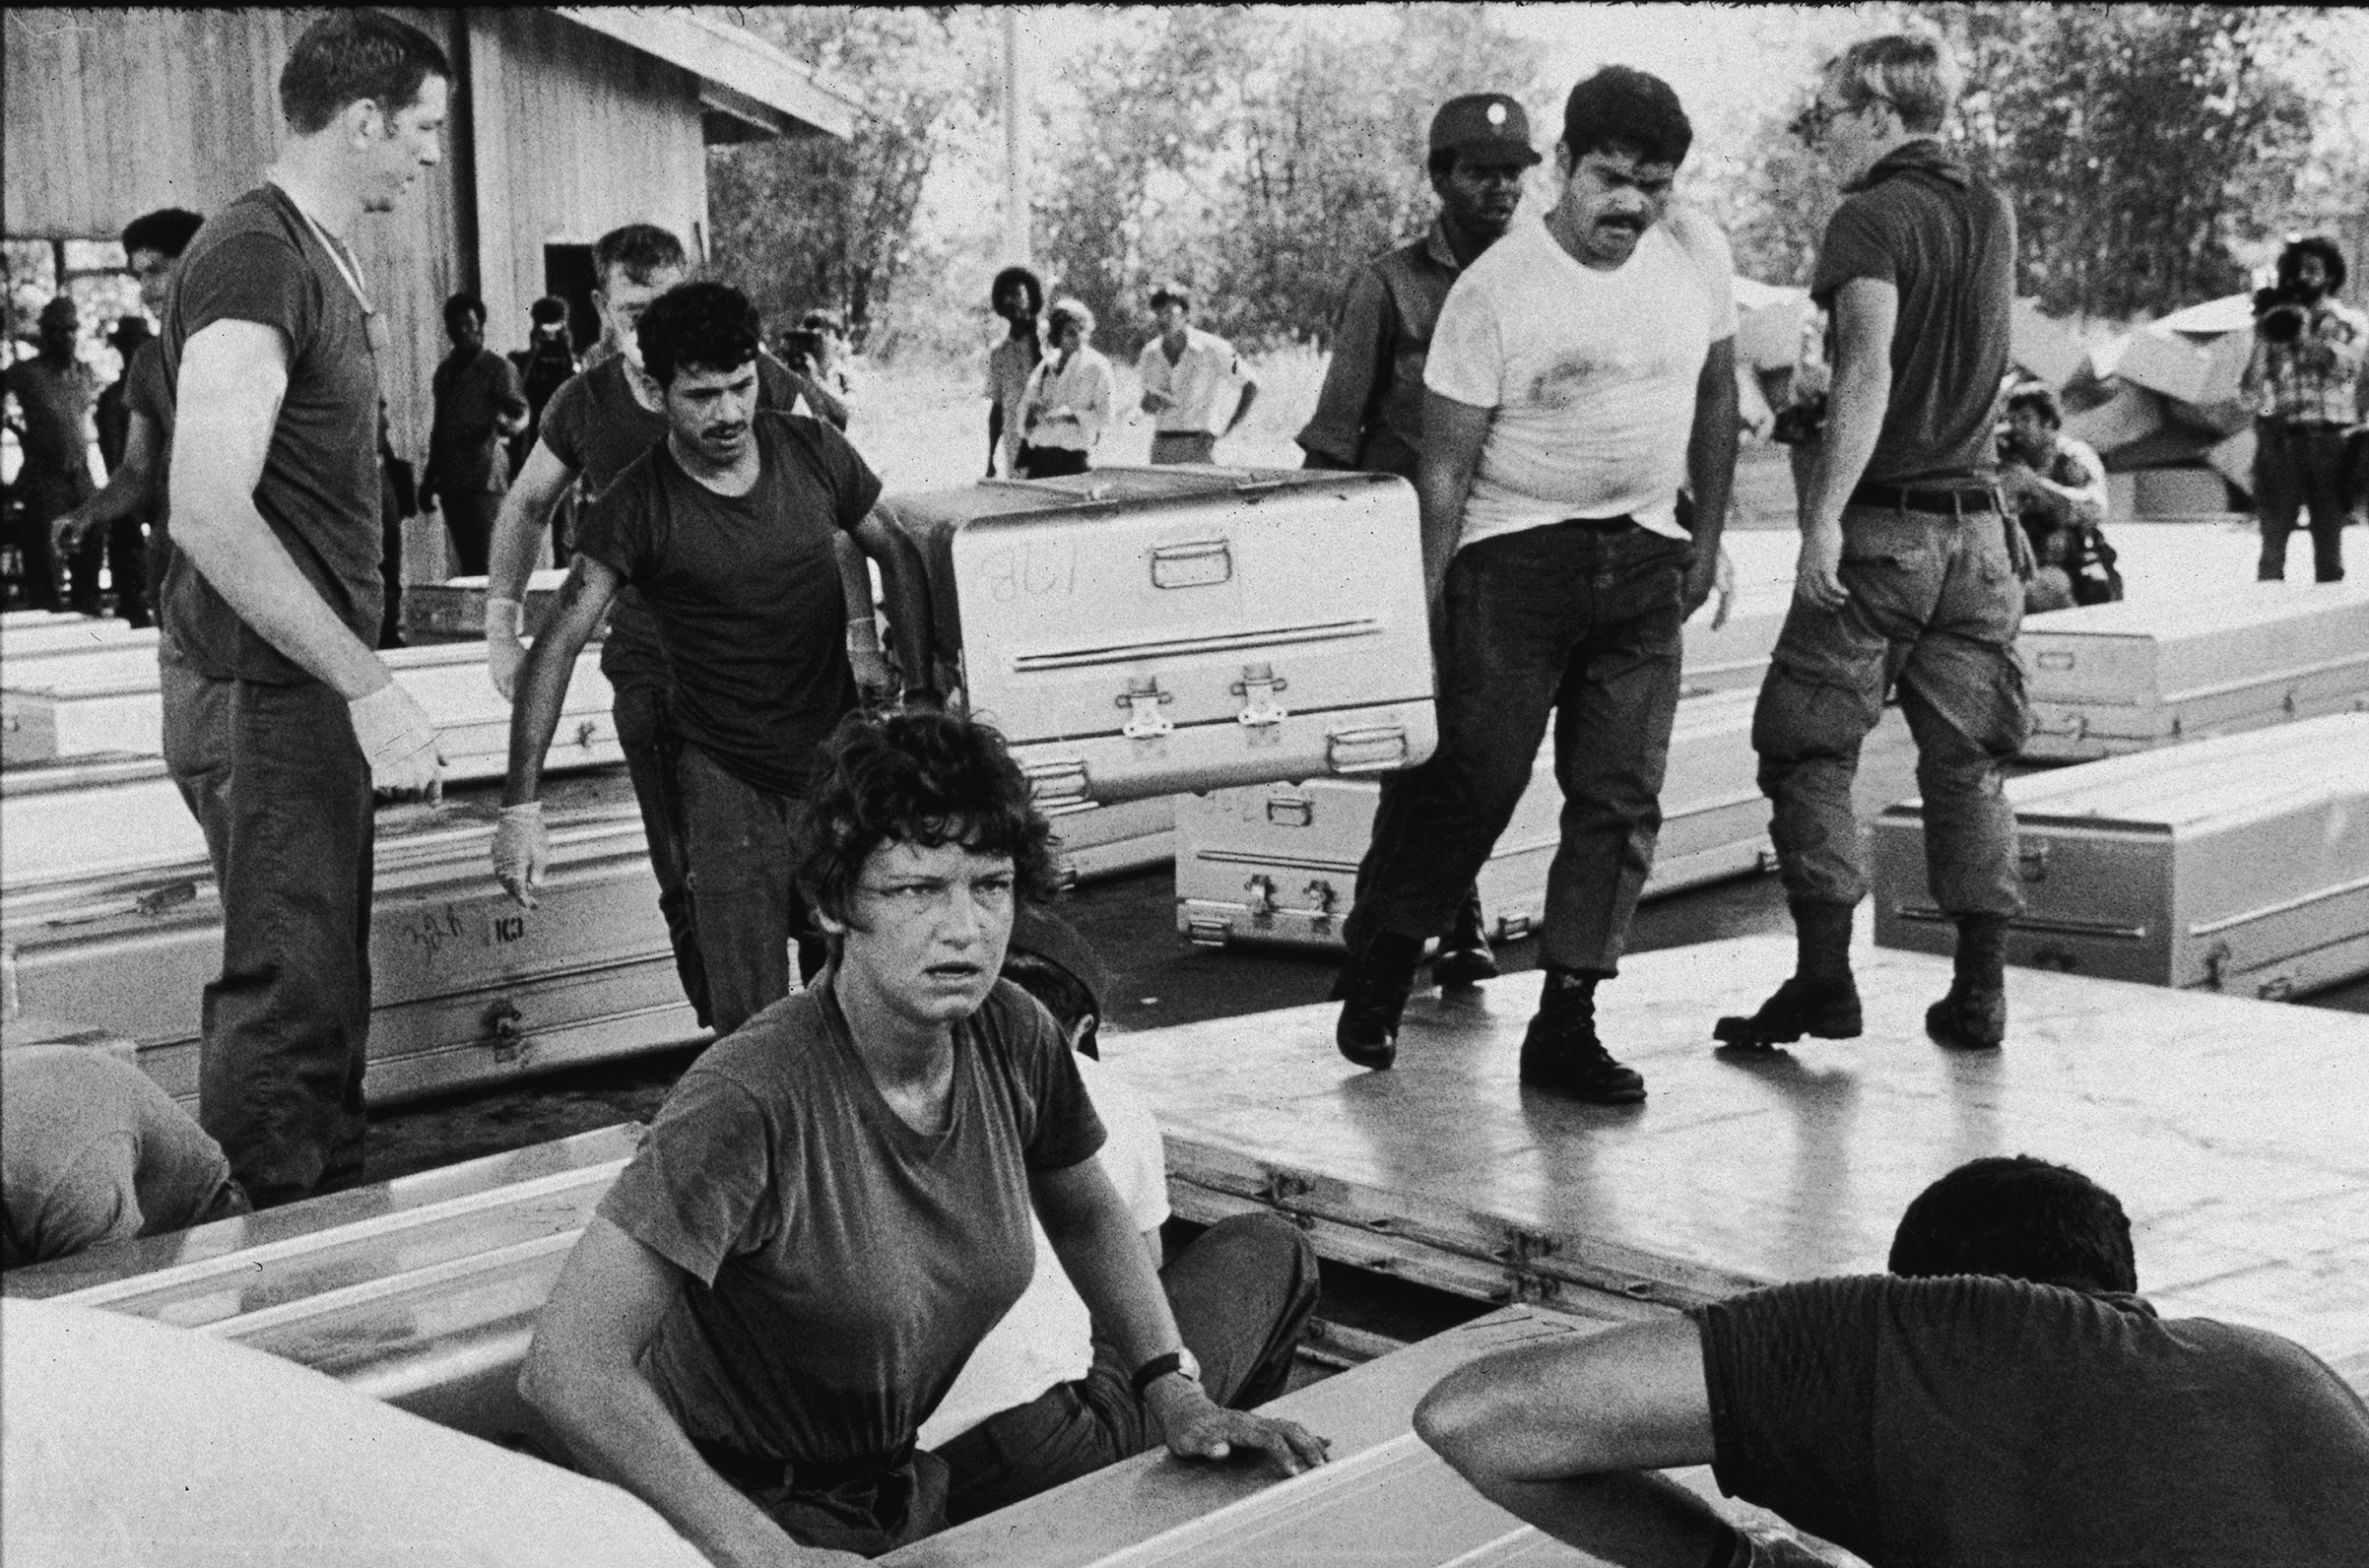 Members of a U.S. military team prepare aluminum coffins for shipment to the United States, following the more than 900 deaths in the mass suicide staged in Jonestown by members of the People's Temple and their leader, the Reverend Jim Jones, Georgetown, Guyana, Nov. 24, 1978.